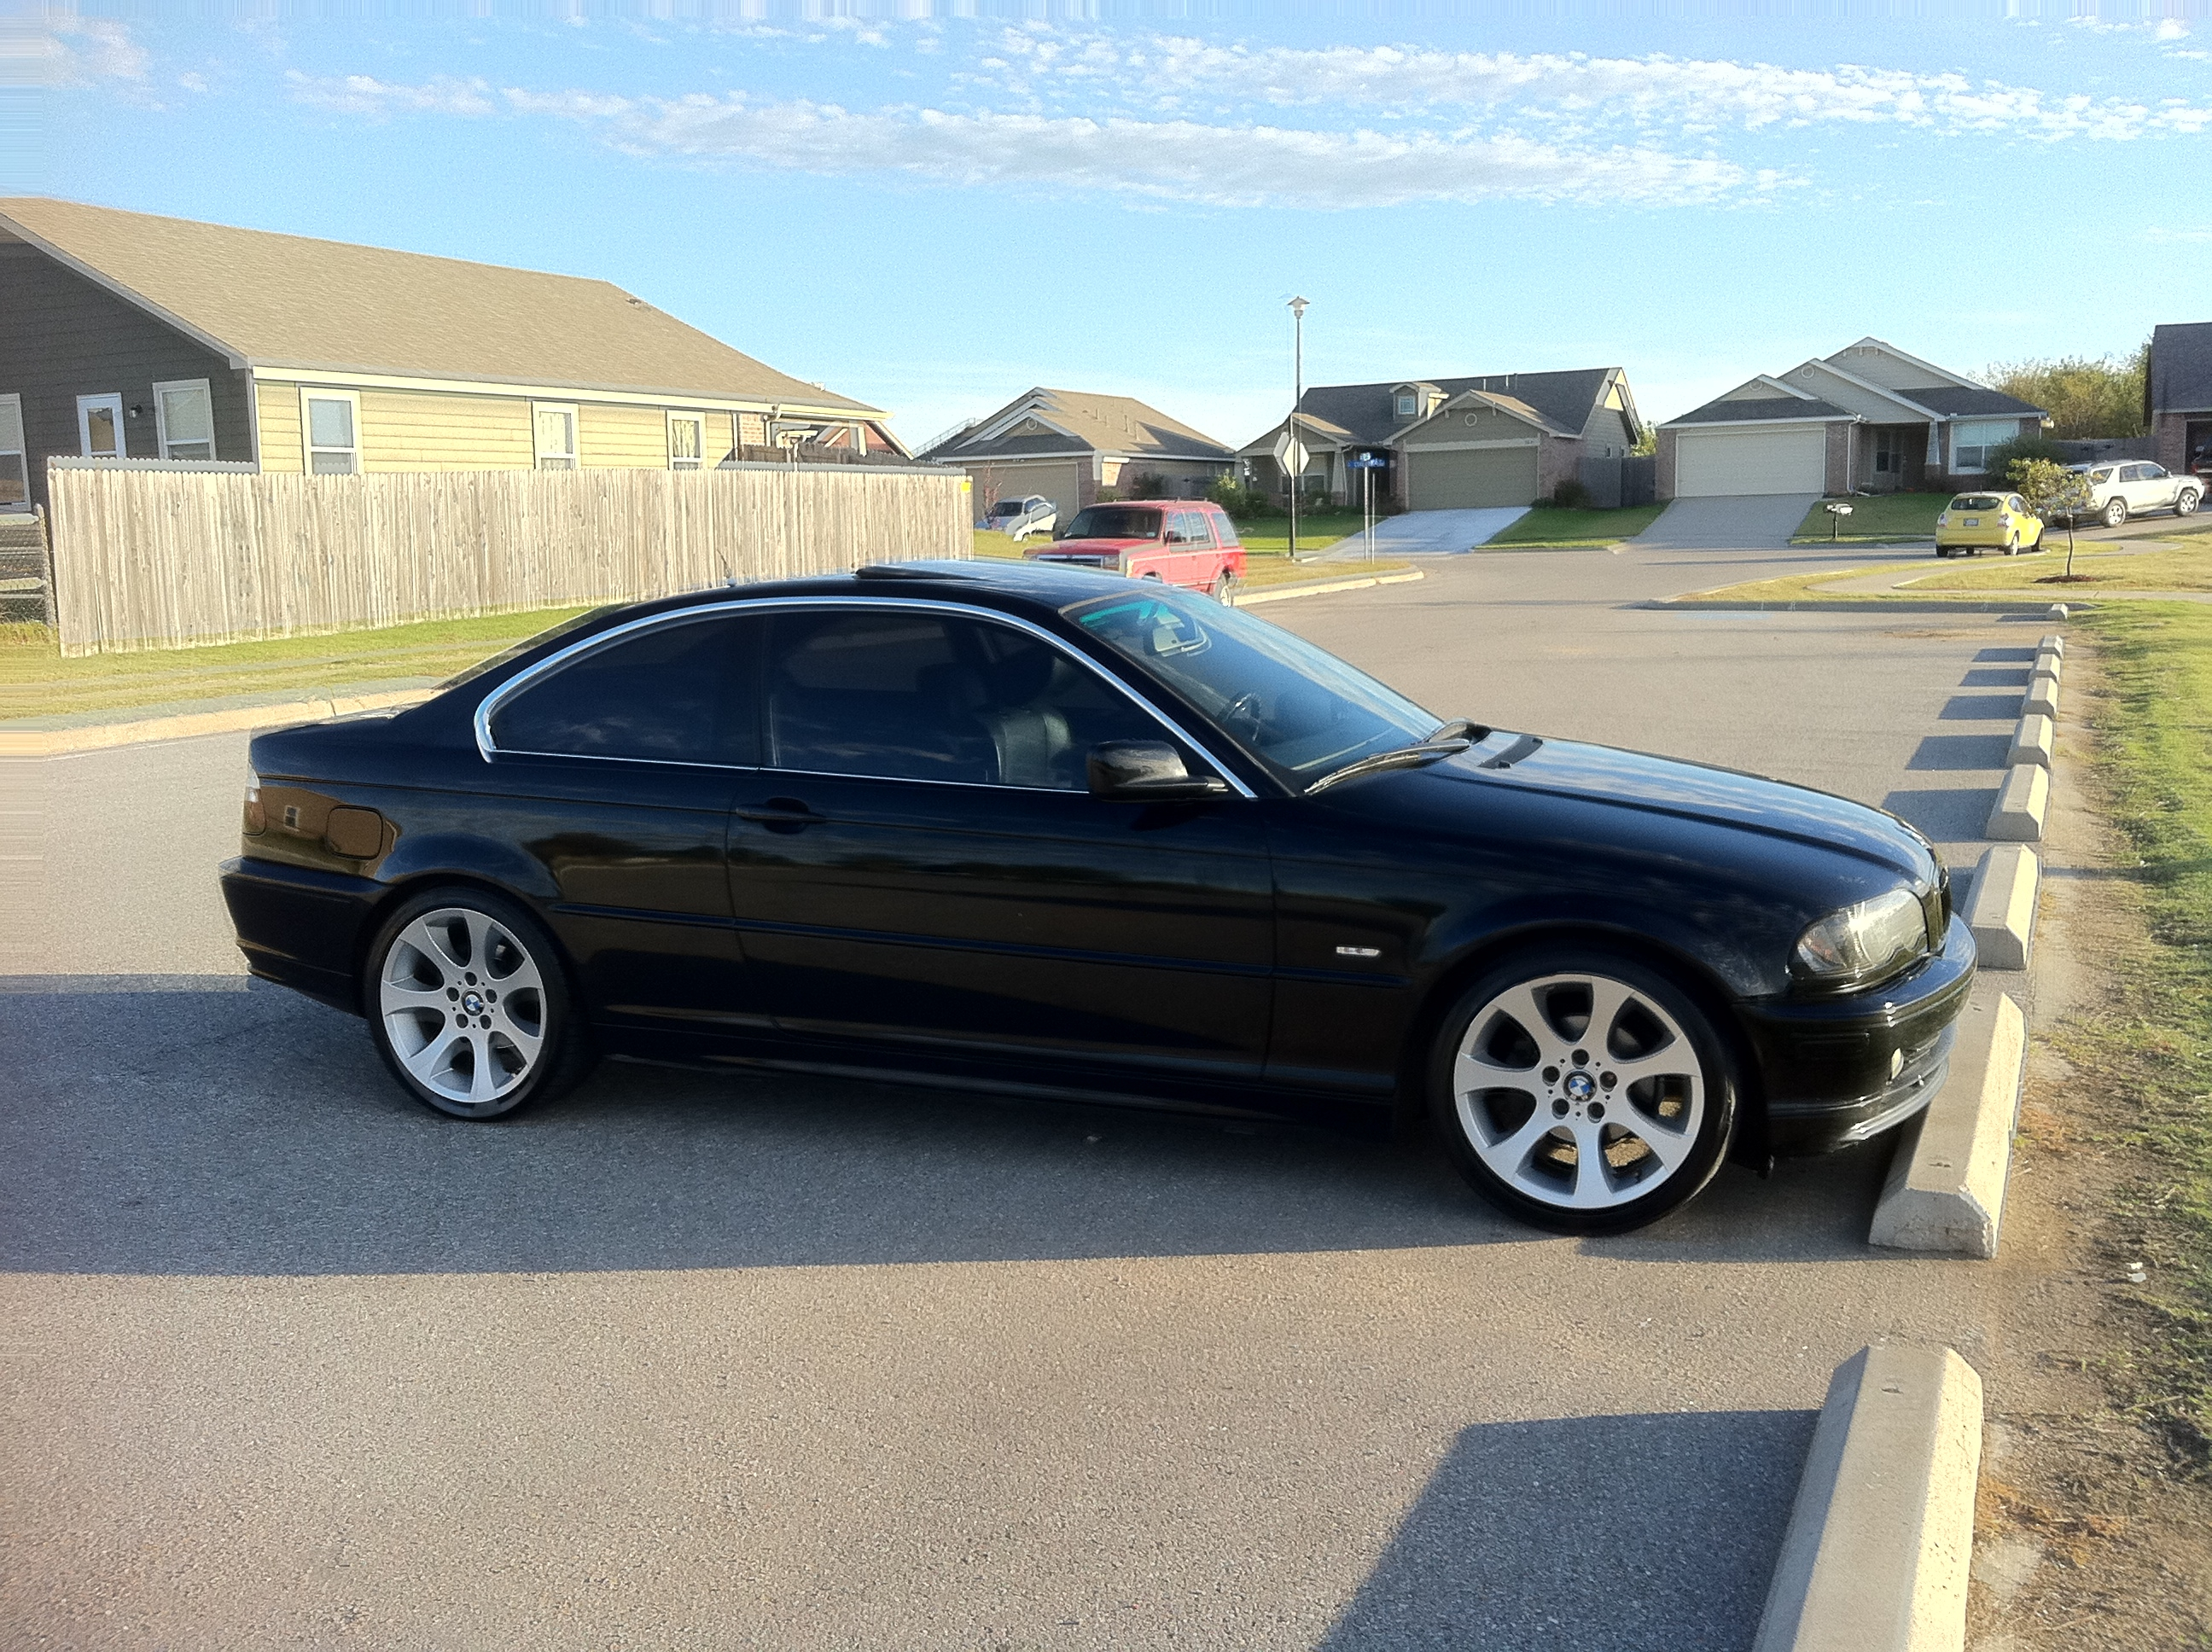 eric waltrip 2000 bmw 3 series323ci coupe 2d specs photos modification info at cardomain. Black Bedroom Furniture Sets. Home Design Ideas